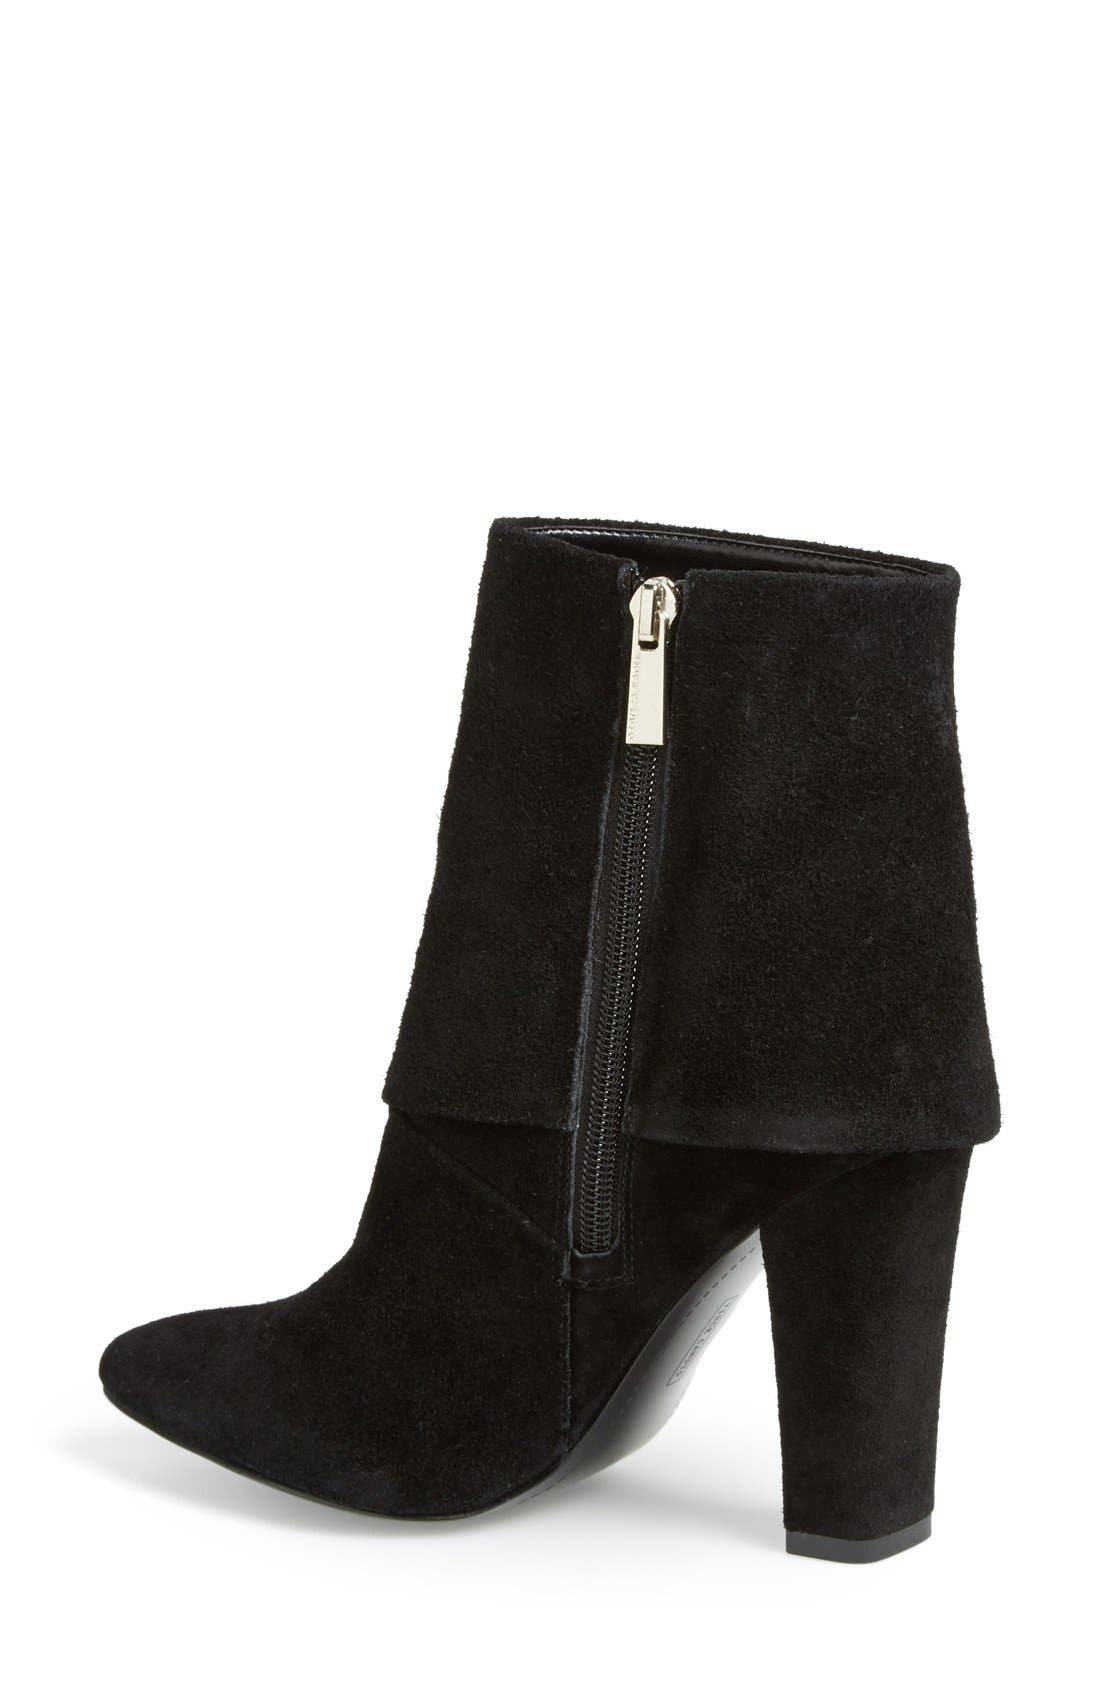 Alternate Image 2  - Vince Camuto 'Amya' Suede Bootie (Women)